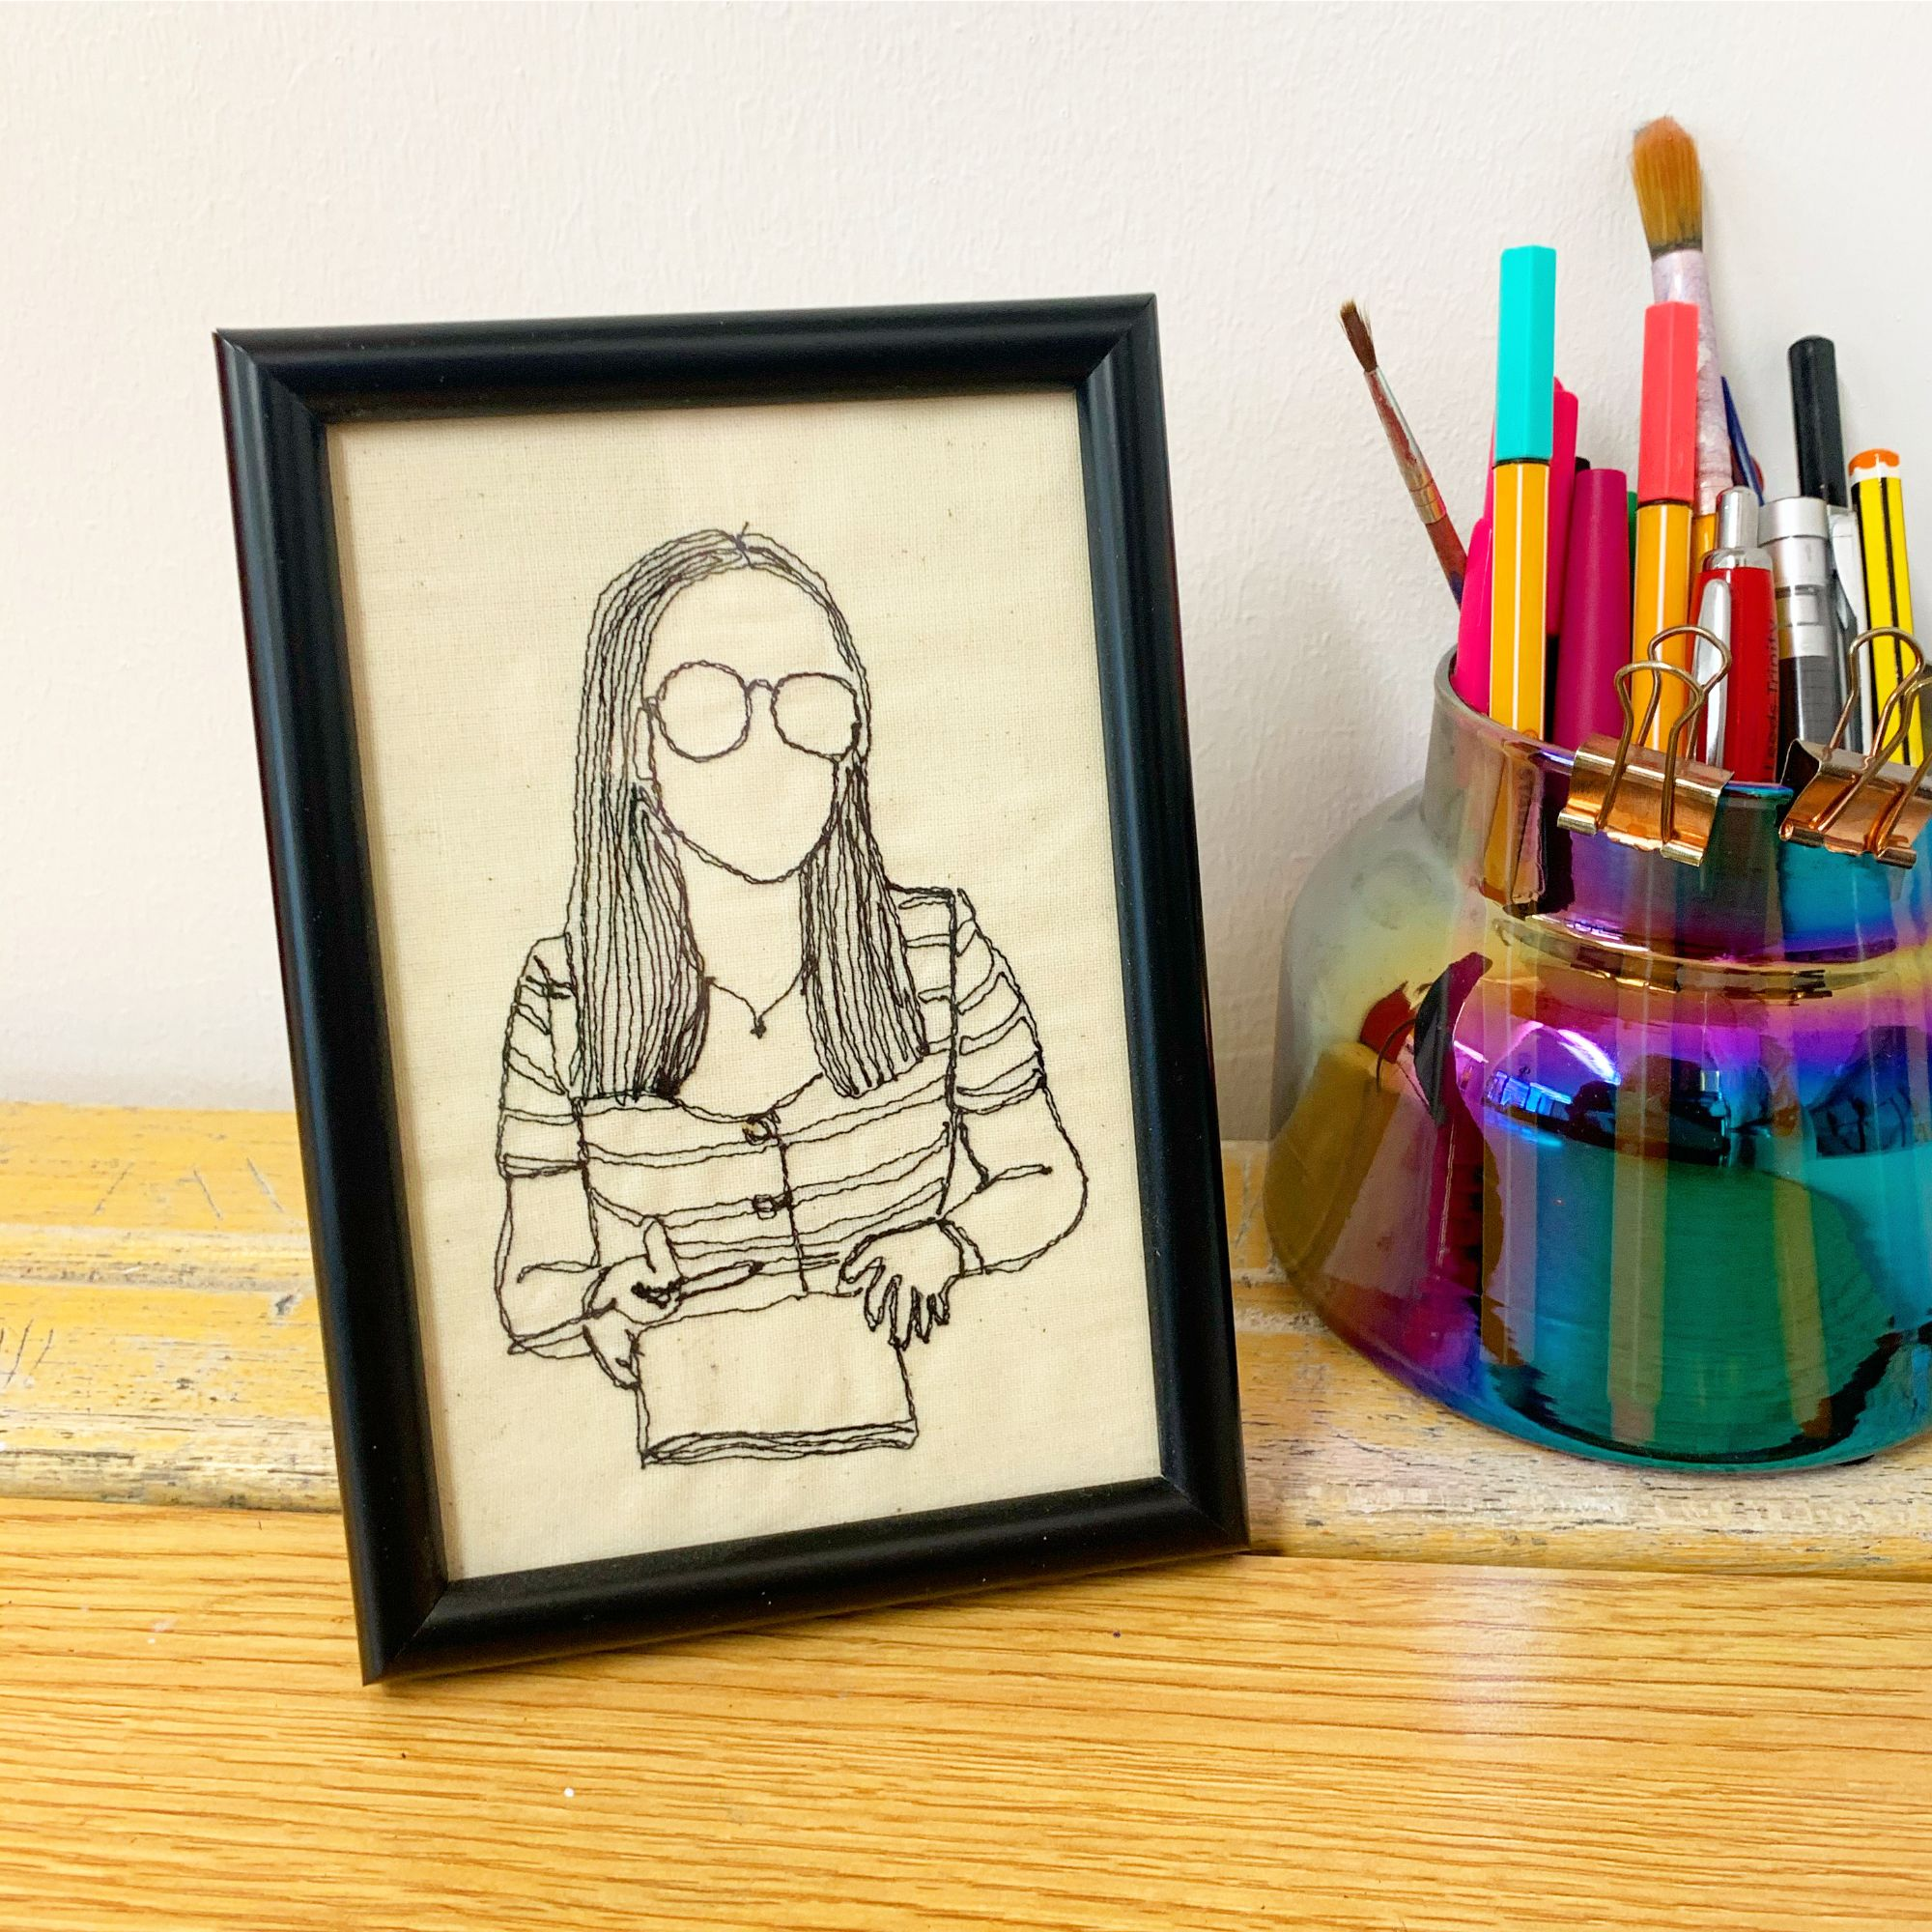 A machine stitched portraitof a young girl, framed and set on a desk next to a pen pot